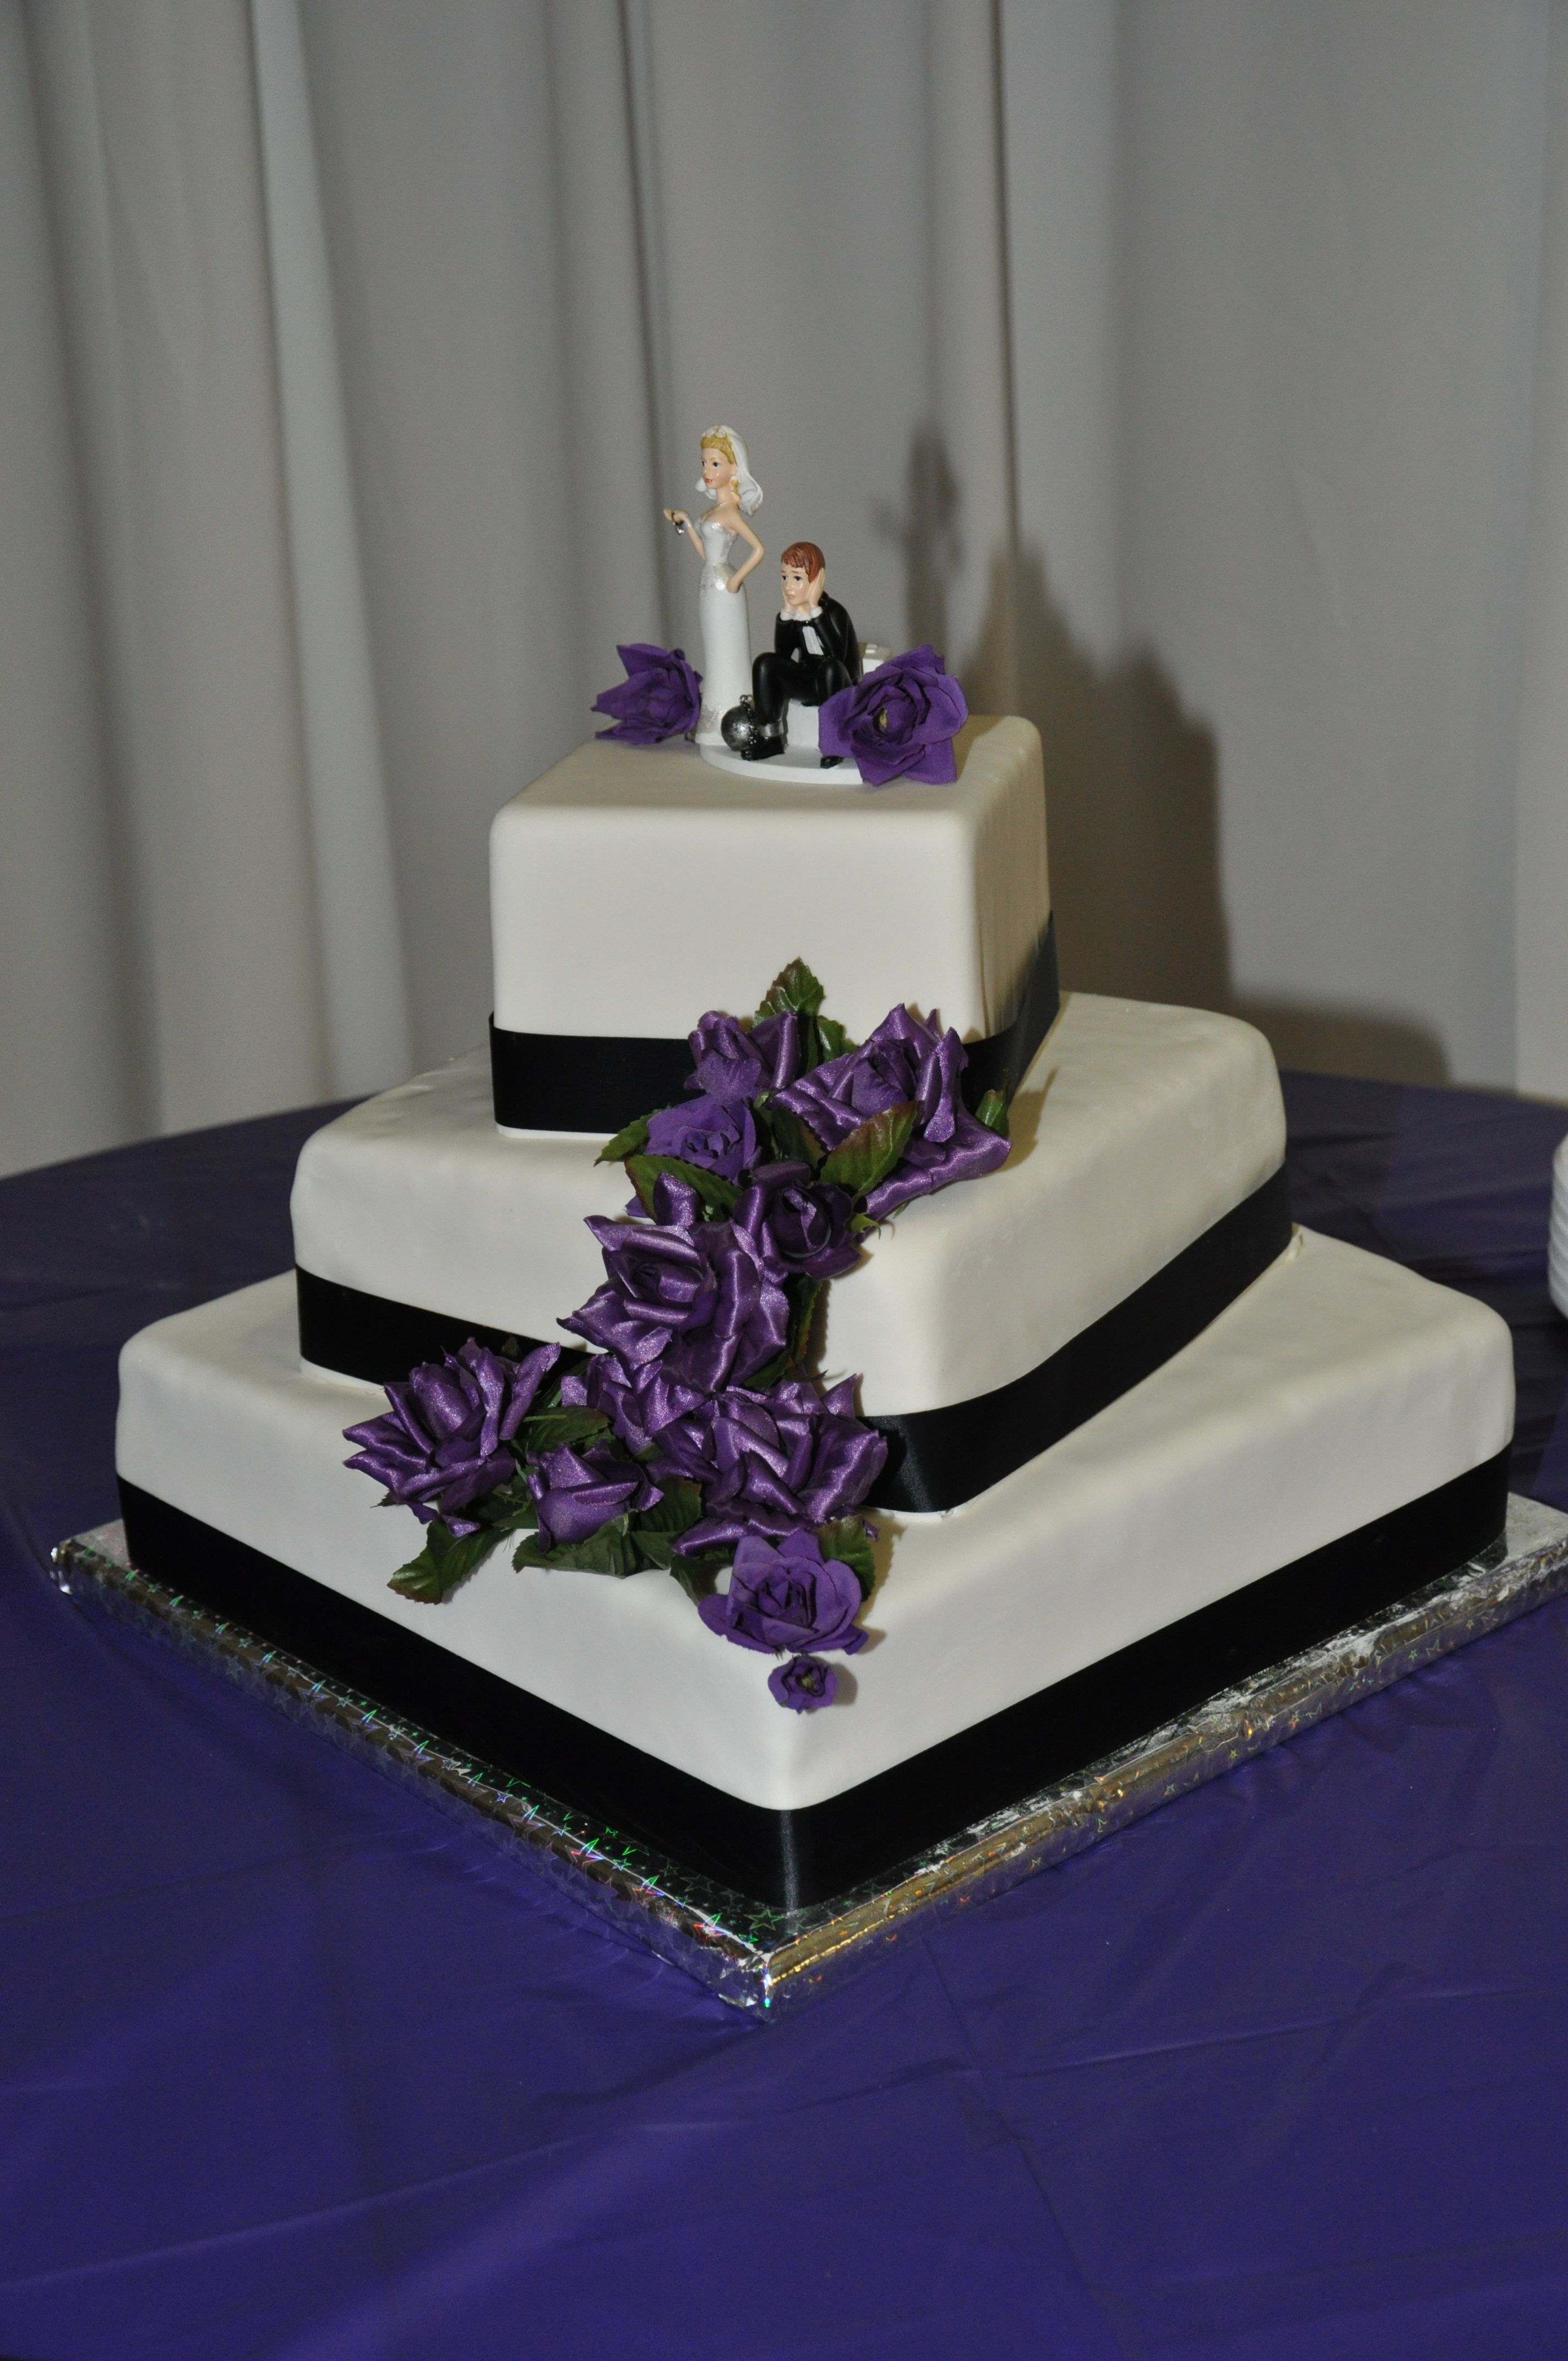 Wedding decorations table october 2018 My wedding cake and the cake topper my husband chose  Chocolate